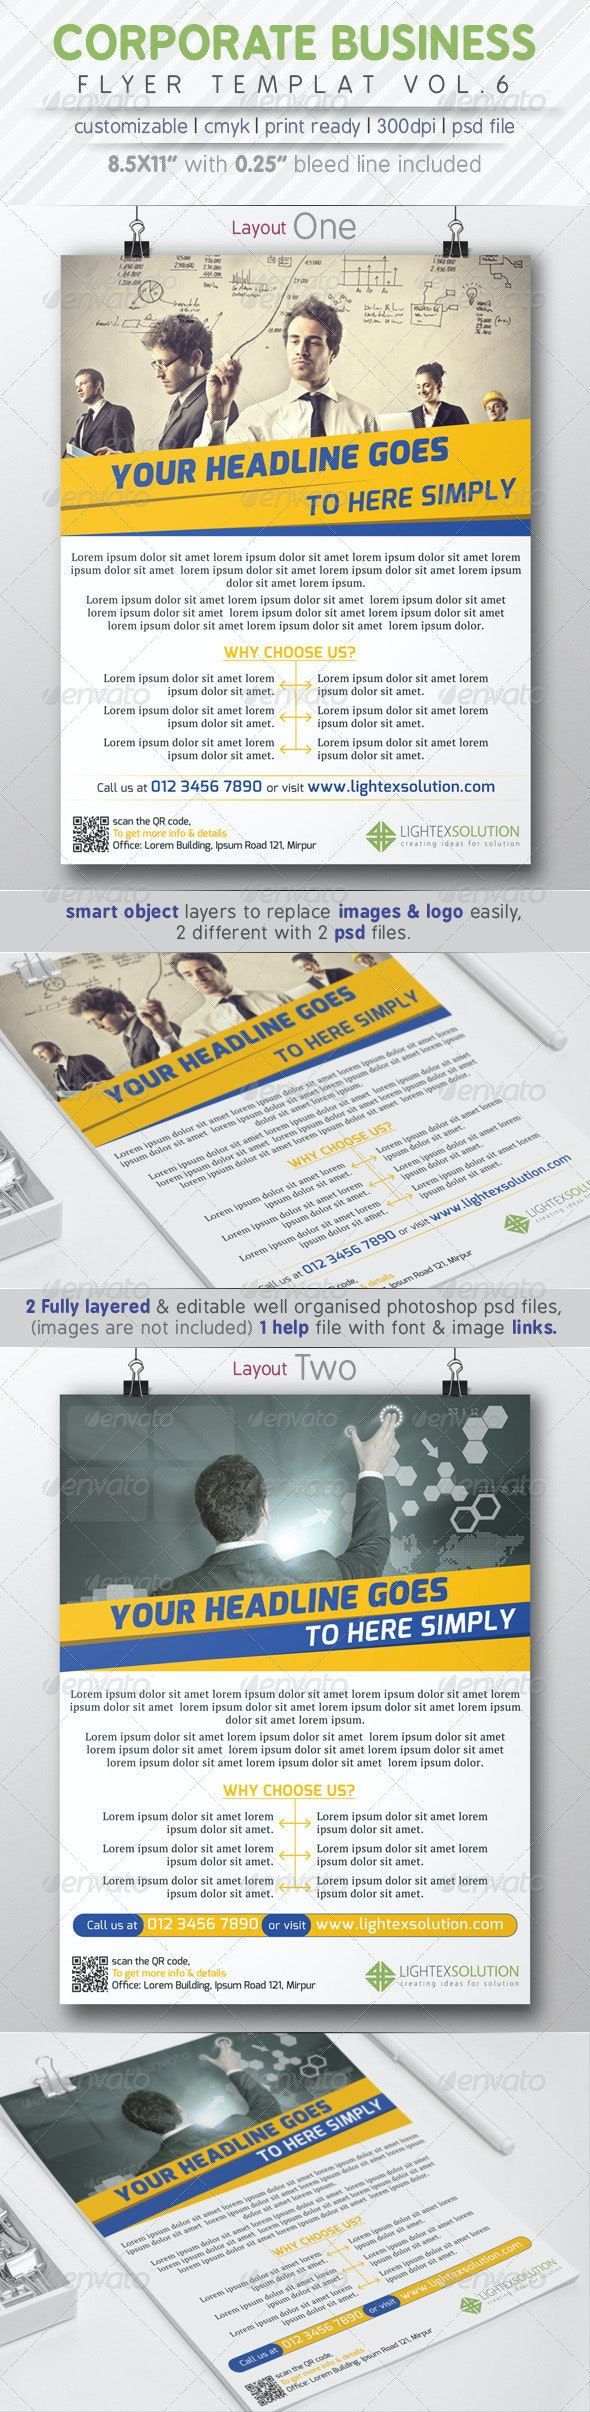 Corporate Business Flyer Vol.6 - Corporate Flyers